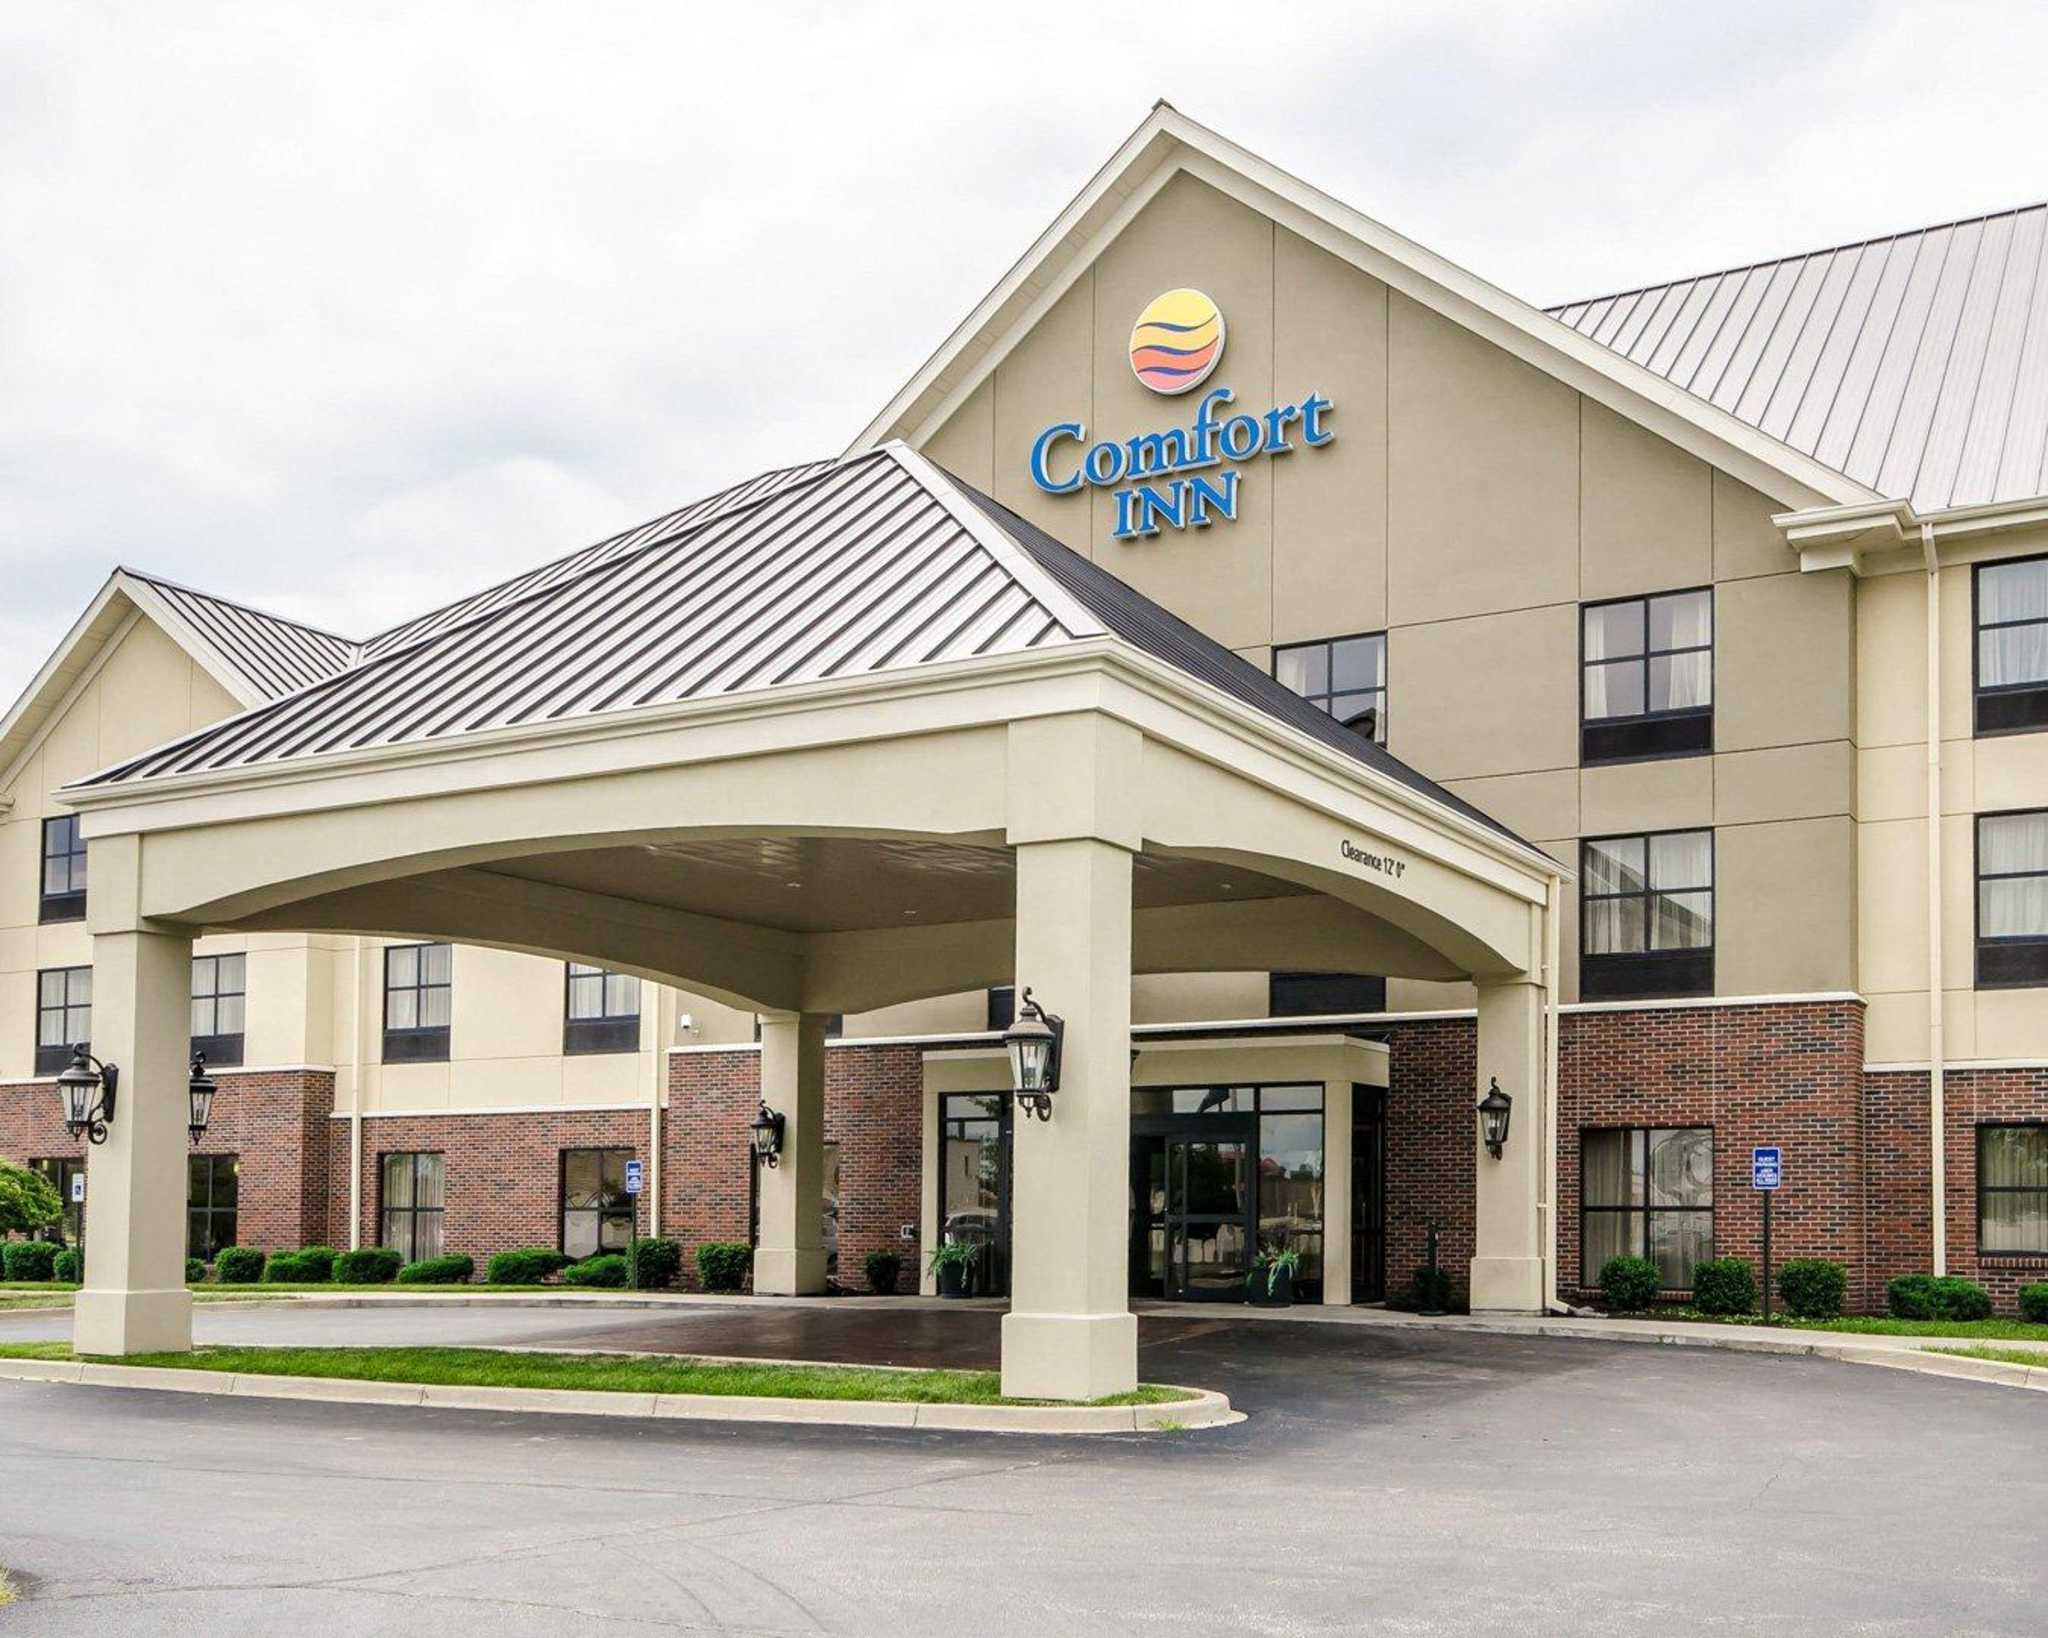 Louisville Hotels With Hot Tub In Room